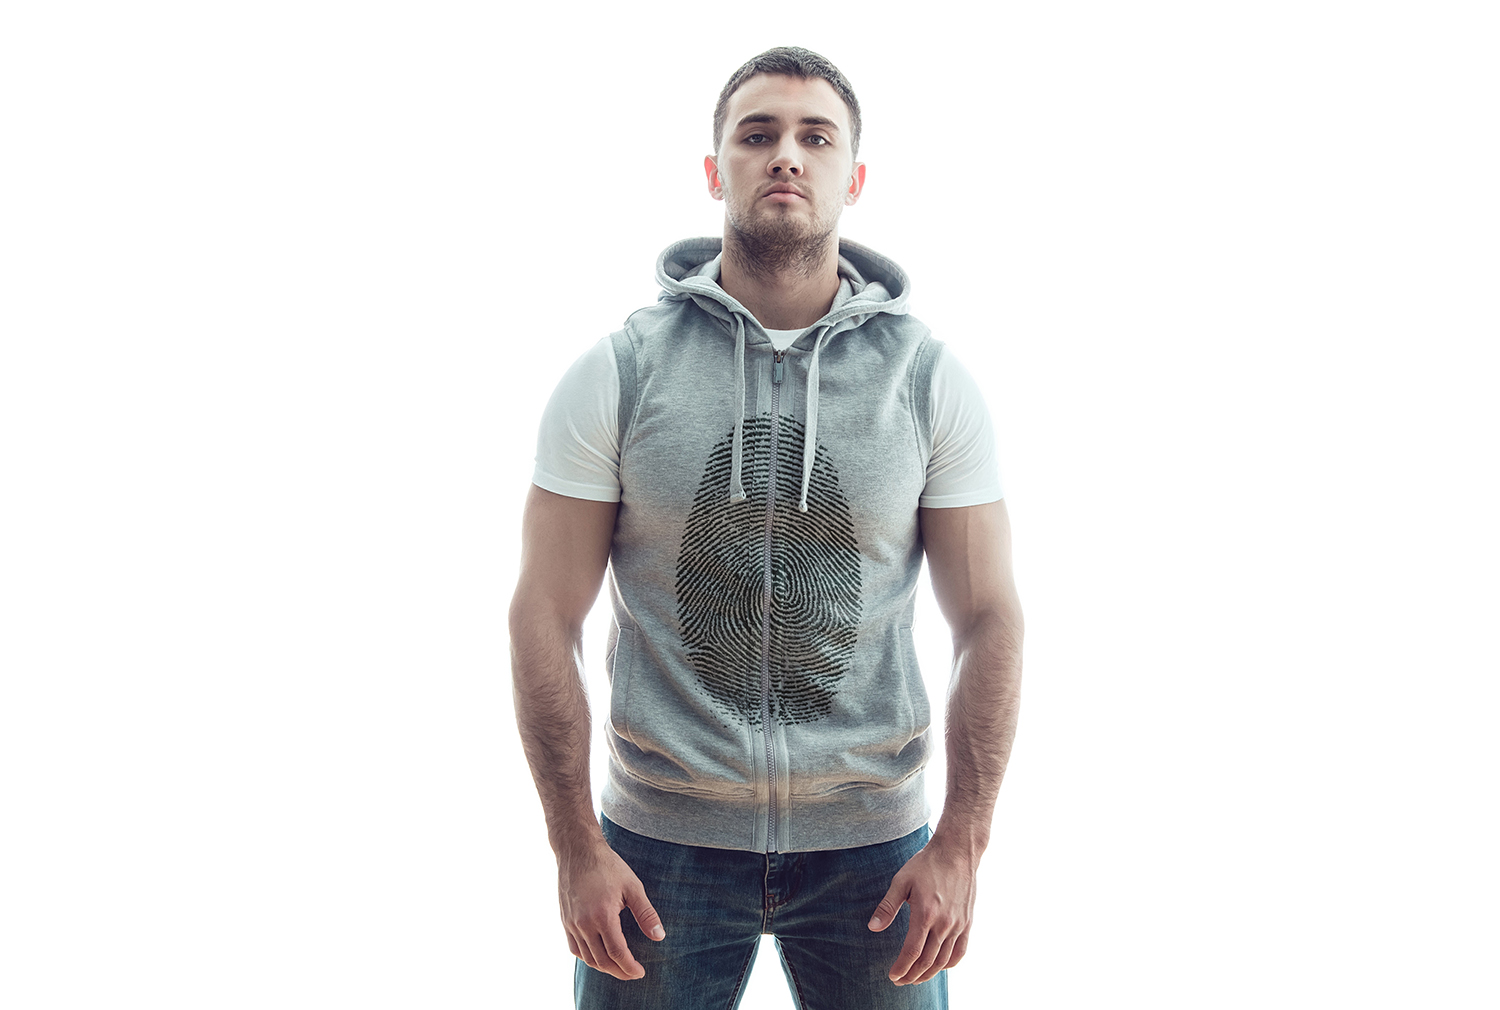 Sleeveless Hoodie Mock-Up example image 11